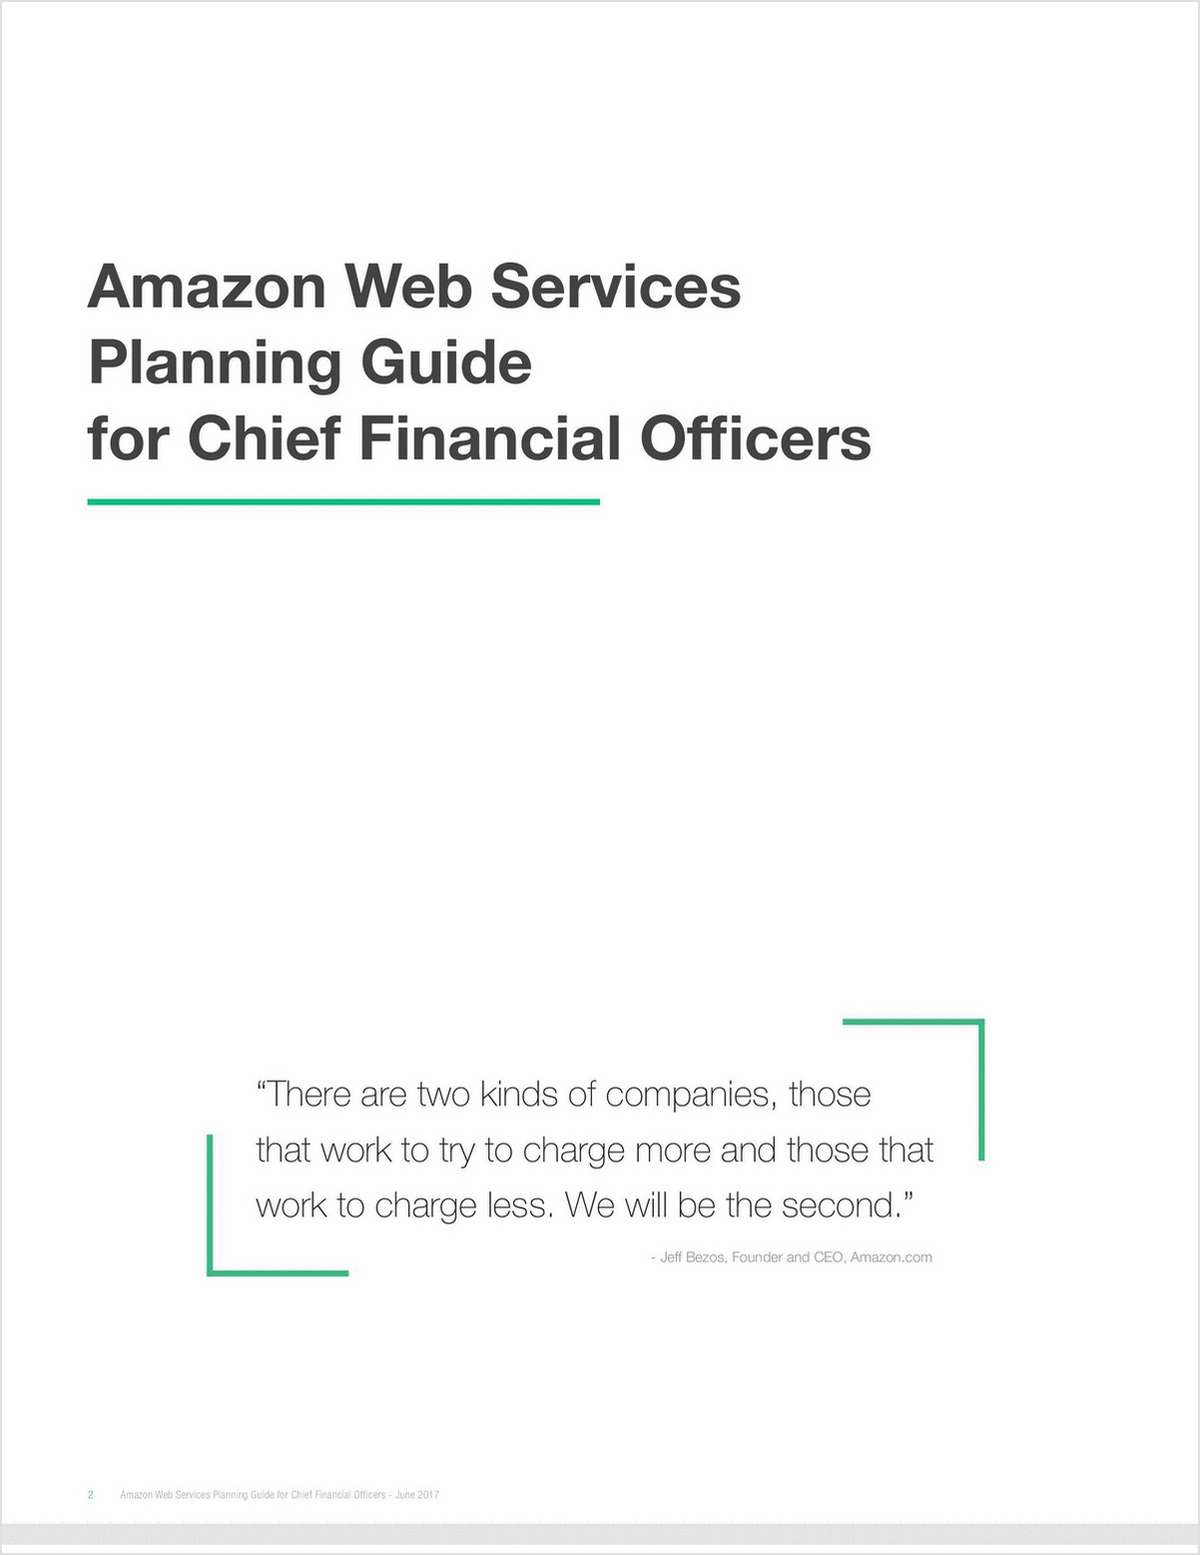 Amazon Web Services Planning Guide for Chief Financial Officers